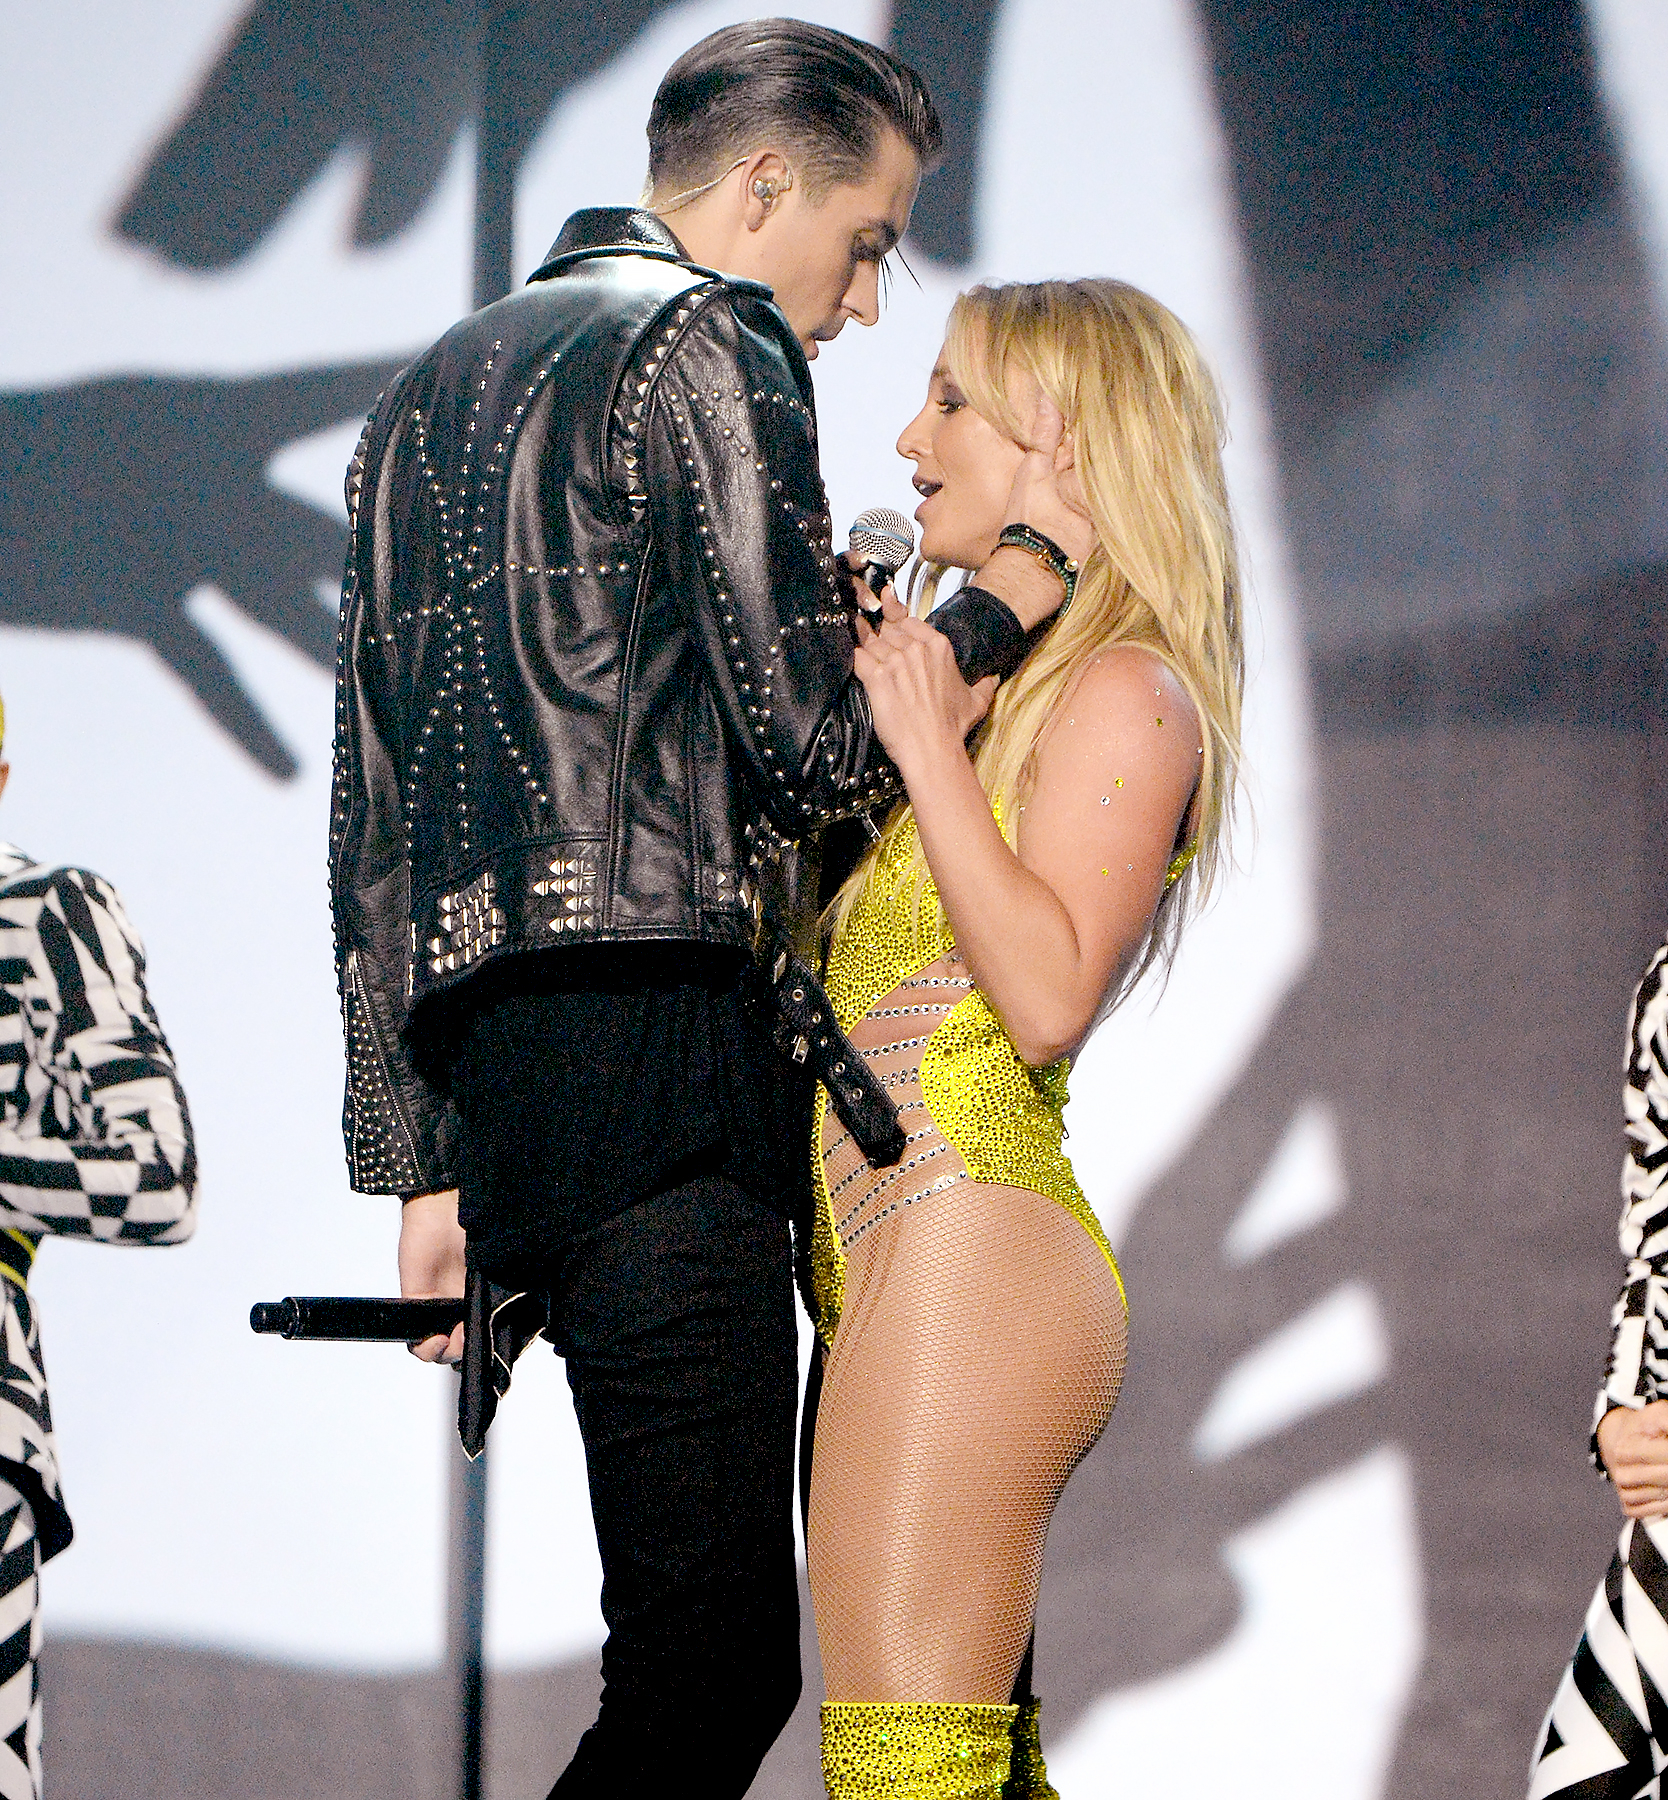 G-Eazy and Britney Spears perform onstage during the 2016 MTV Music Video Awards.